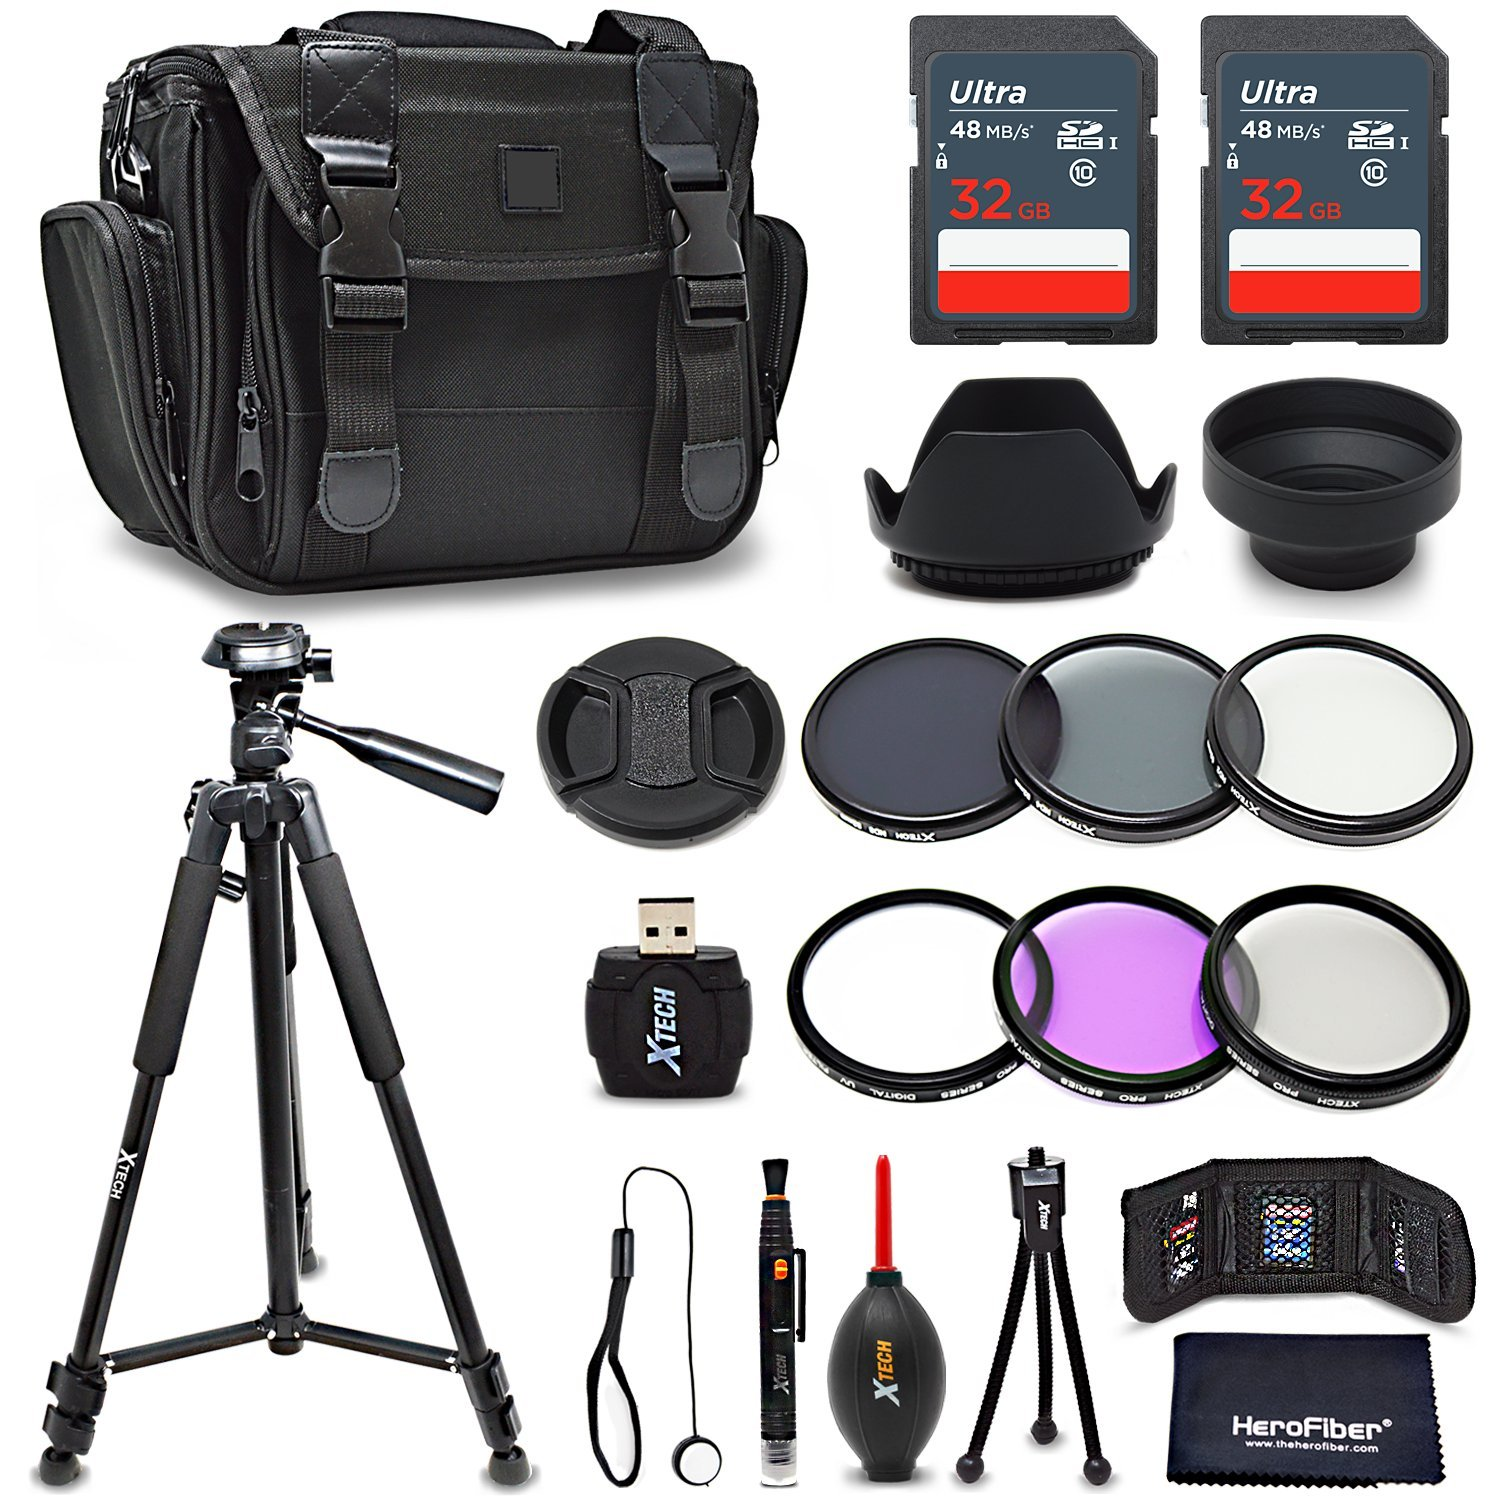 Premium 55mm Accessories Bundle Kit for DSLR Cameras - Includes 64GB Memory Card, Premium Camera Case, 72 inch Tripod, 55mm ND Filters, 55mm 3 Piece Filter Kit, 55mm Lens Hood + More by HeroFiber